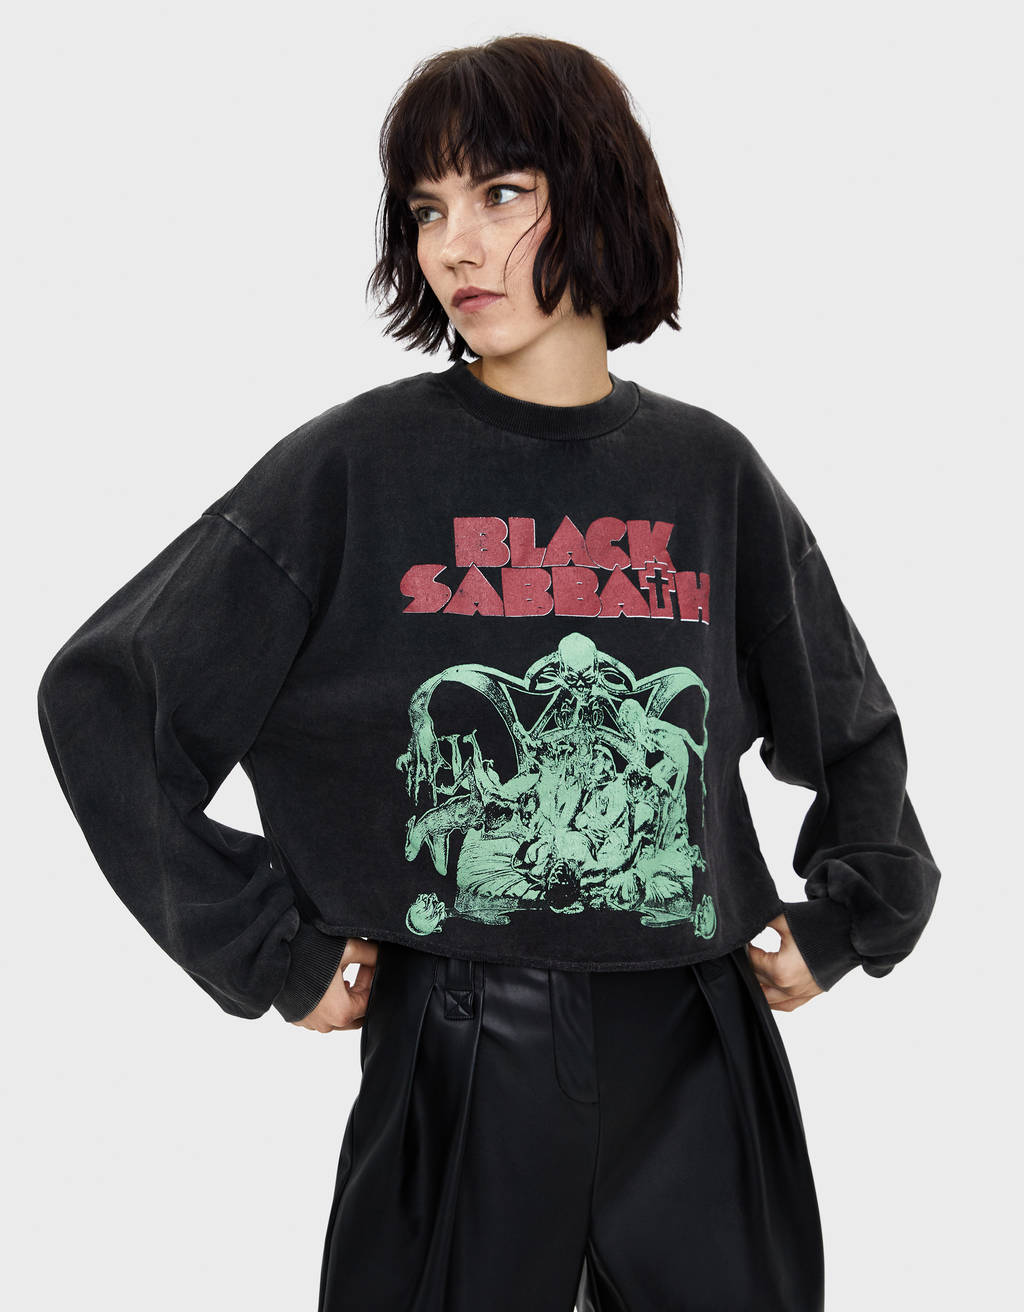 Sweatshirt Black Sabbath